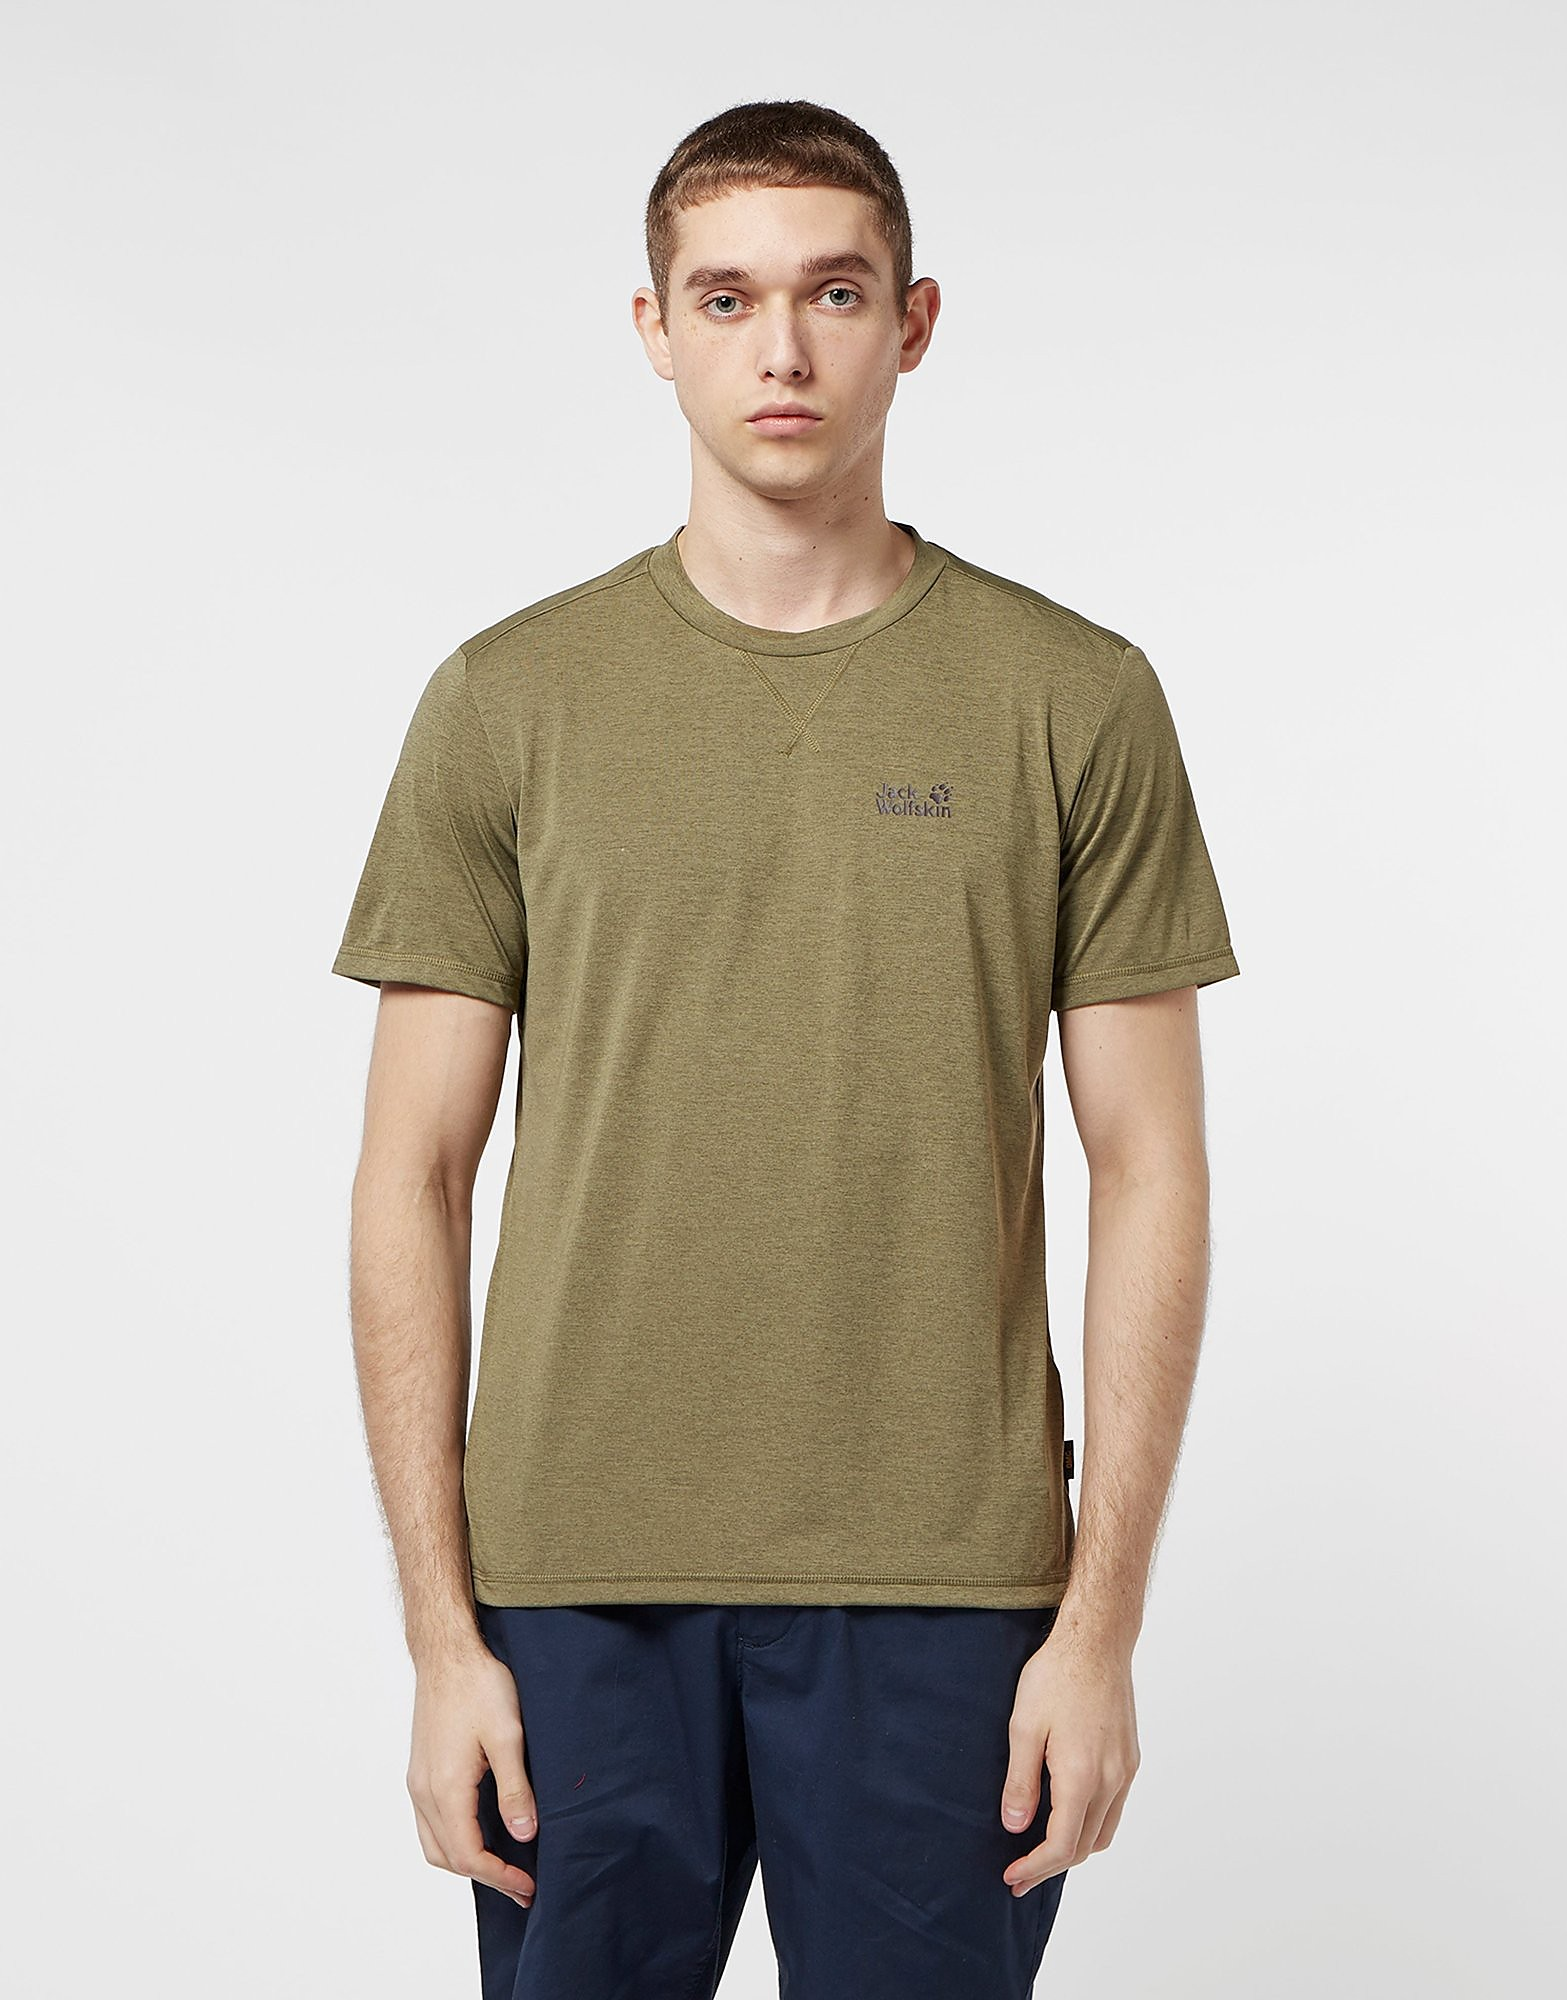 Jack Wolfskin Crosstrail Short Sleeve T-Shirt